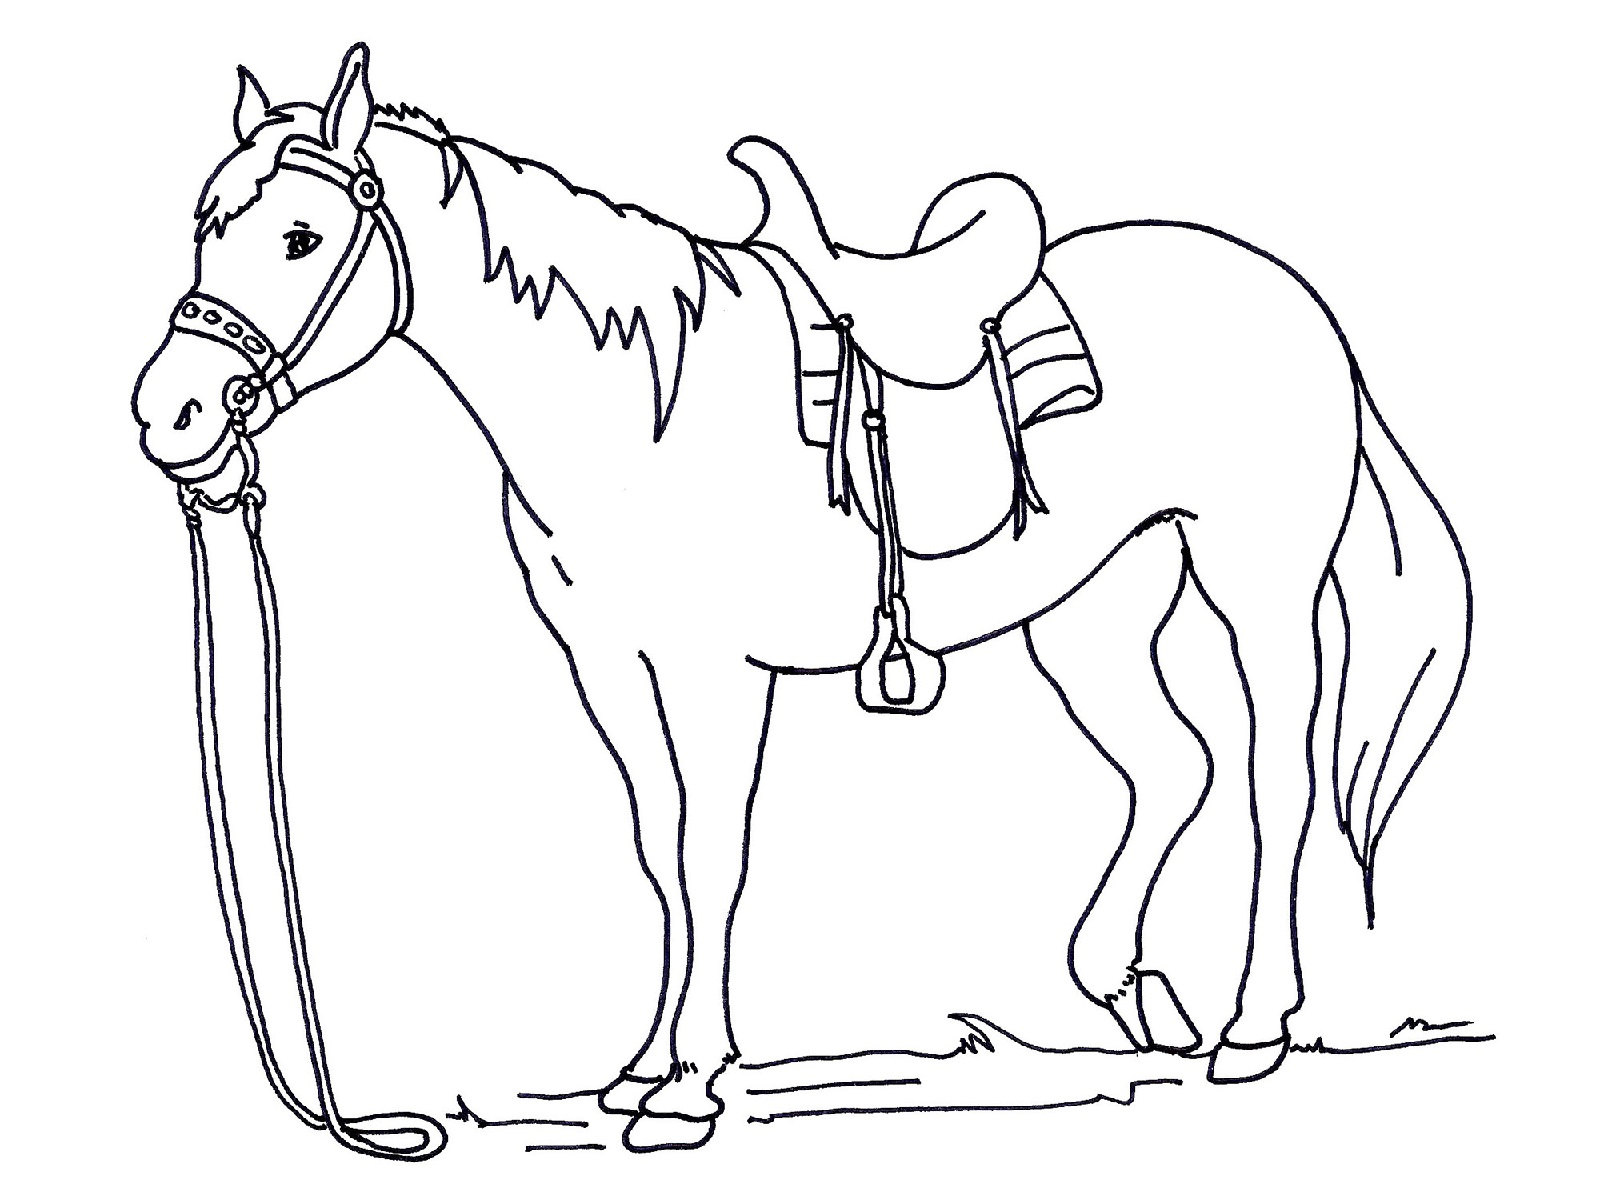 Horse Riding Coloring Pages - Learny Kids